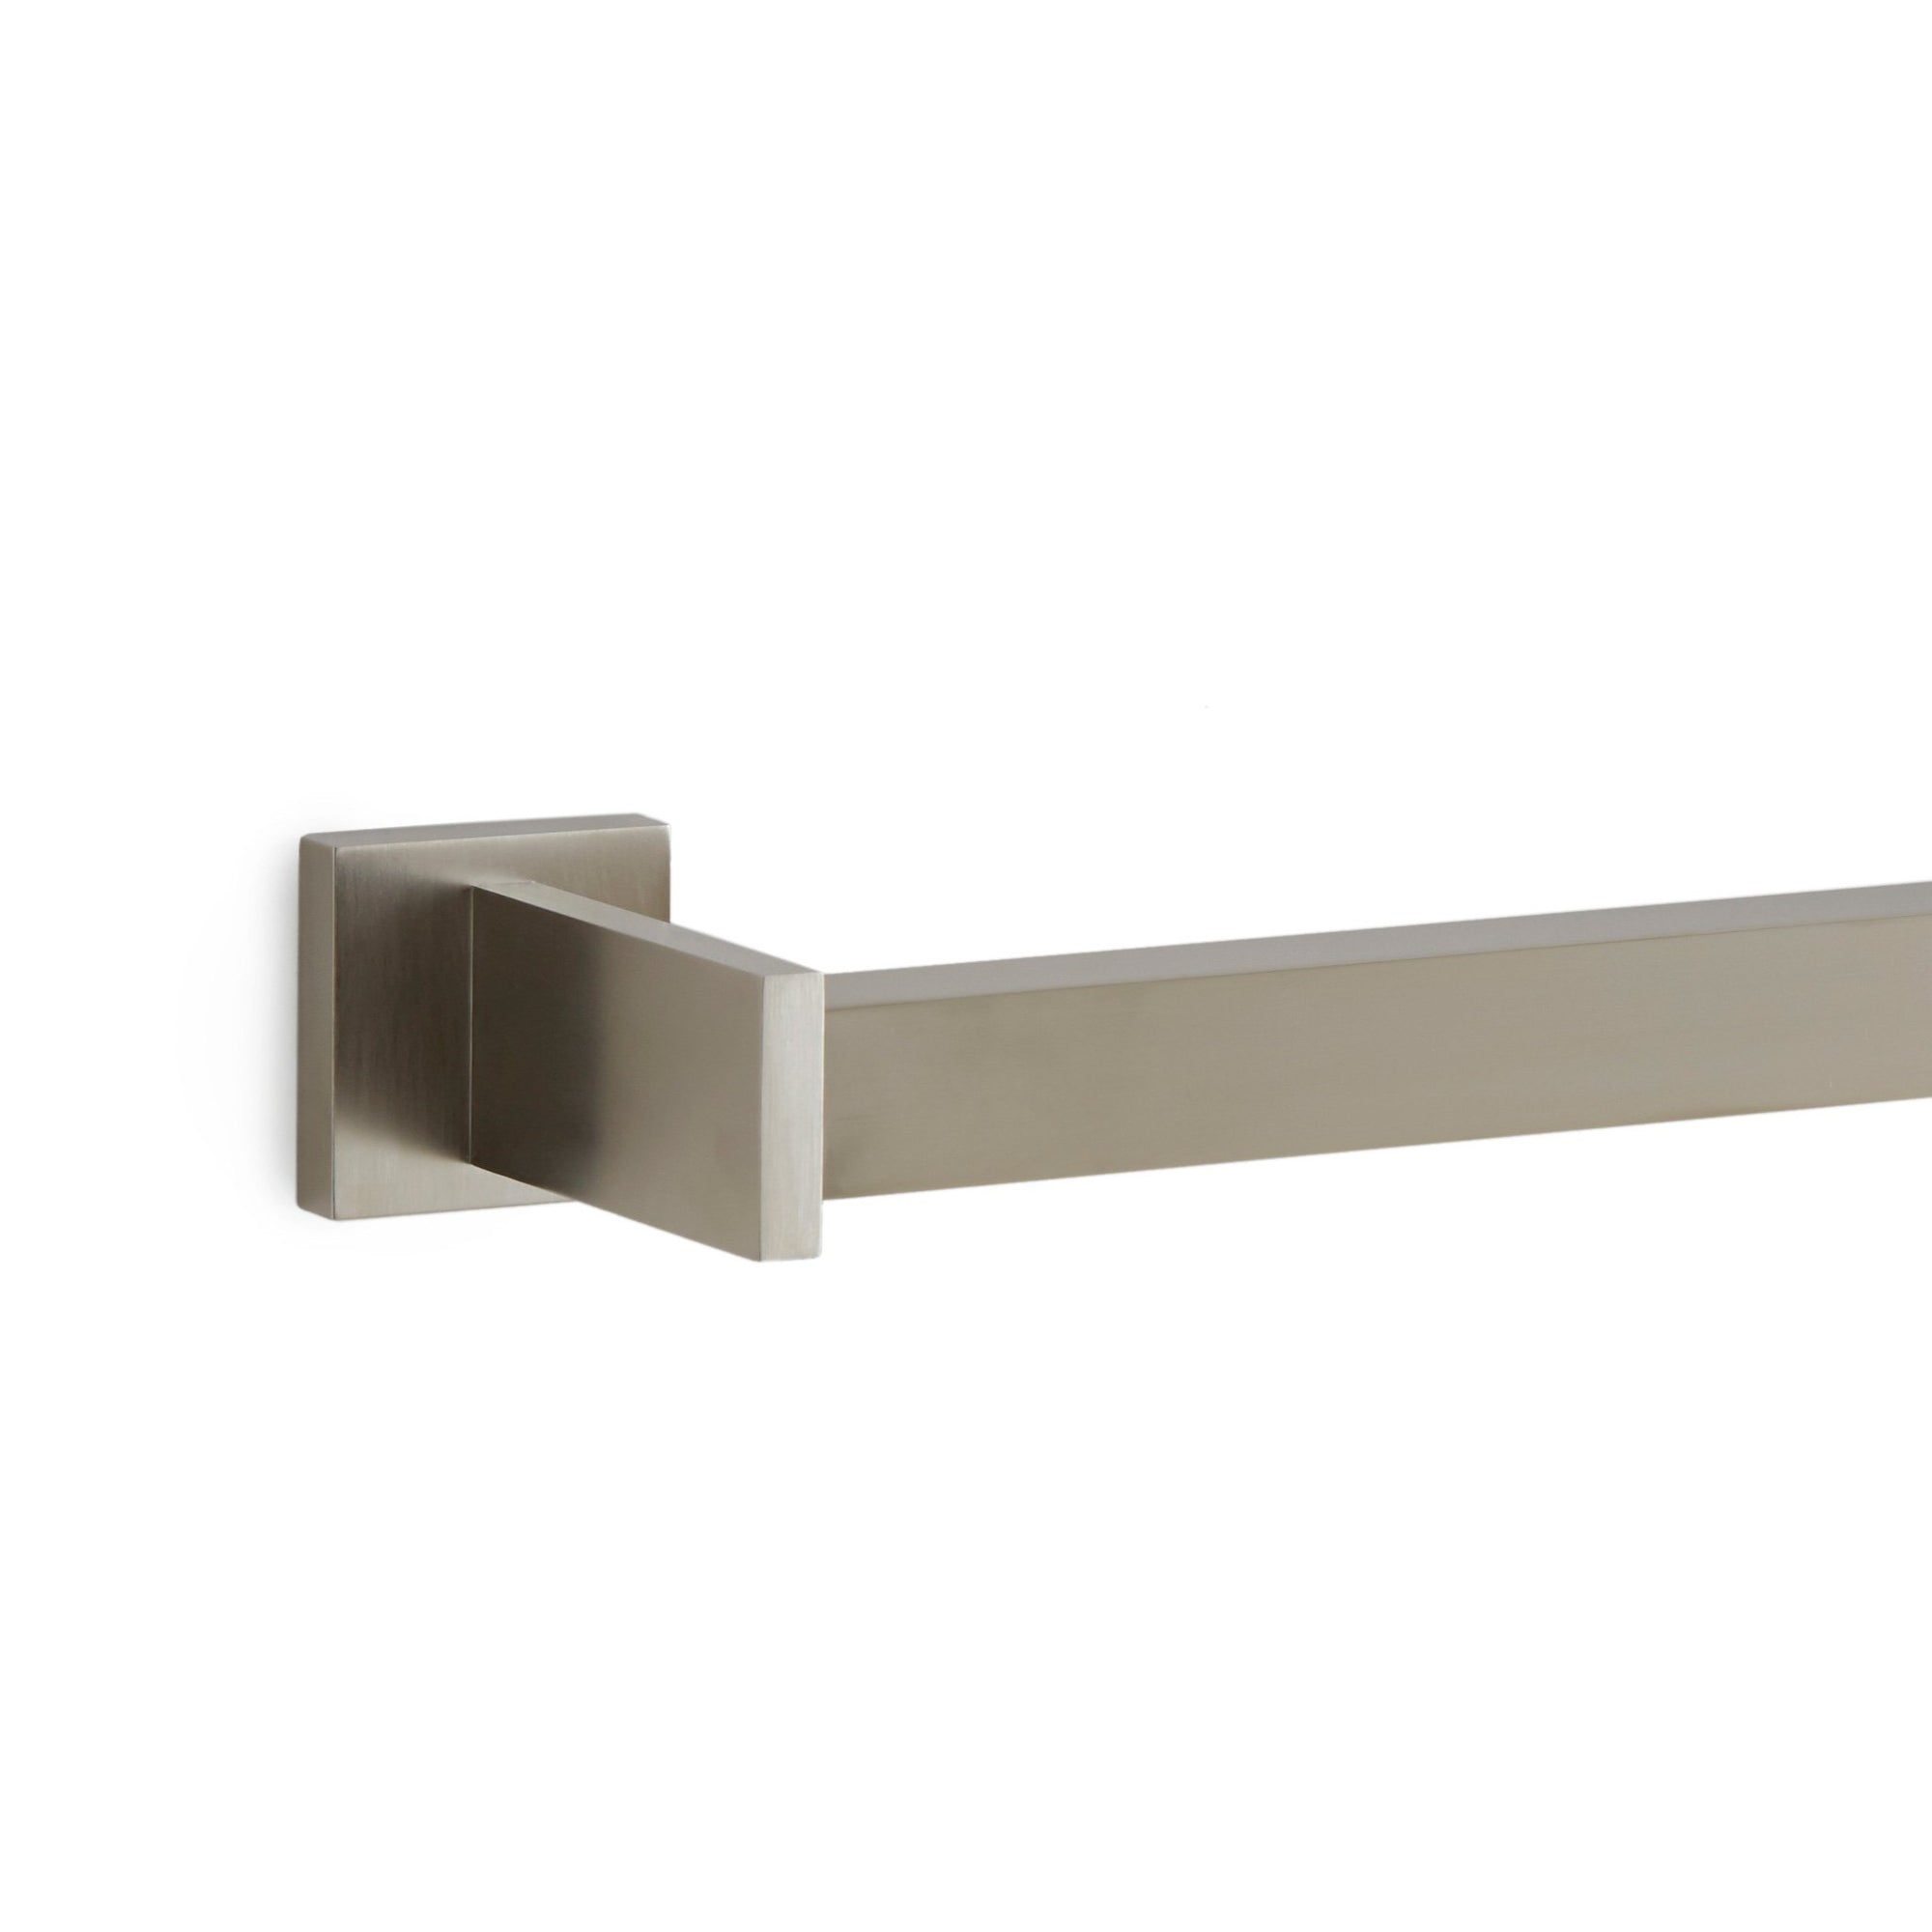 101TB-30-BN Sherle Wagner International Modern Towel Bar in Brushed Nickel metal finish